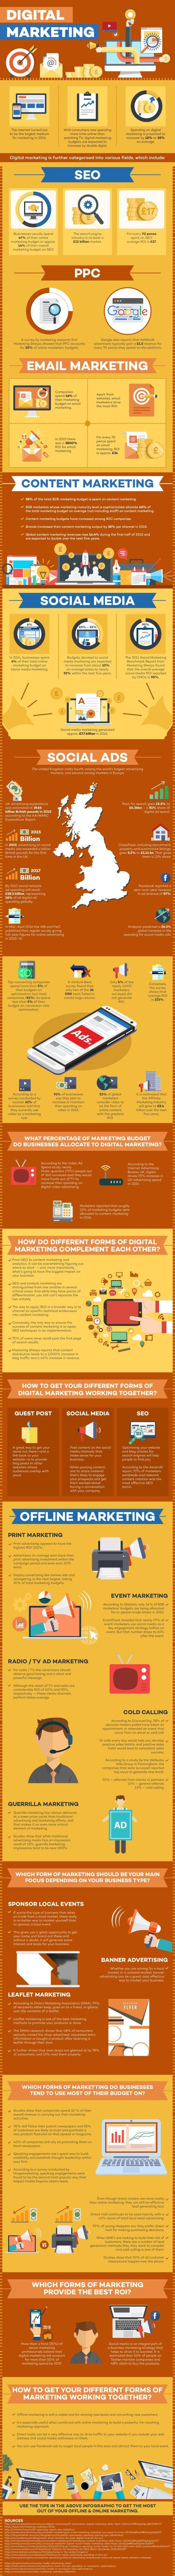 Take a look at this online vs offline marketing-infographic for details on a variety of marketing channels, as well as the support statistics for each. FINALLY!  An Easy Way To Recruit People Into Your MLM Business Online - Rejection FREE - Without Wasting Your Time & Money Chasing Dead Beat Prospects & Leads…""